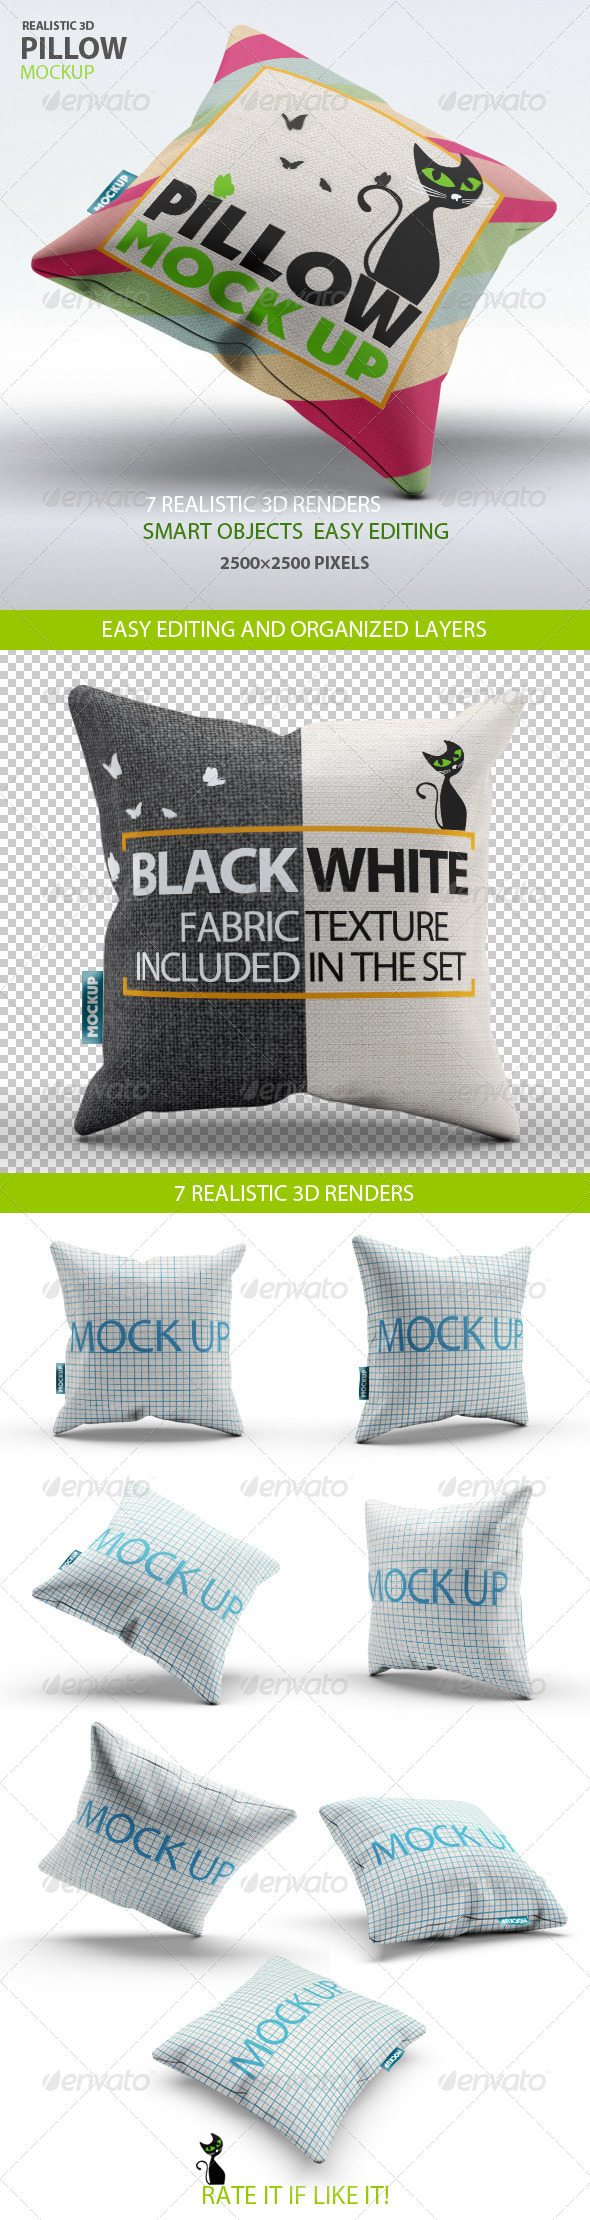 GraphicRiver Pillow Mock-Up 7794640